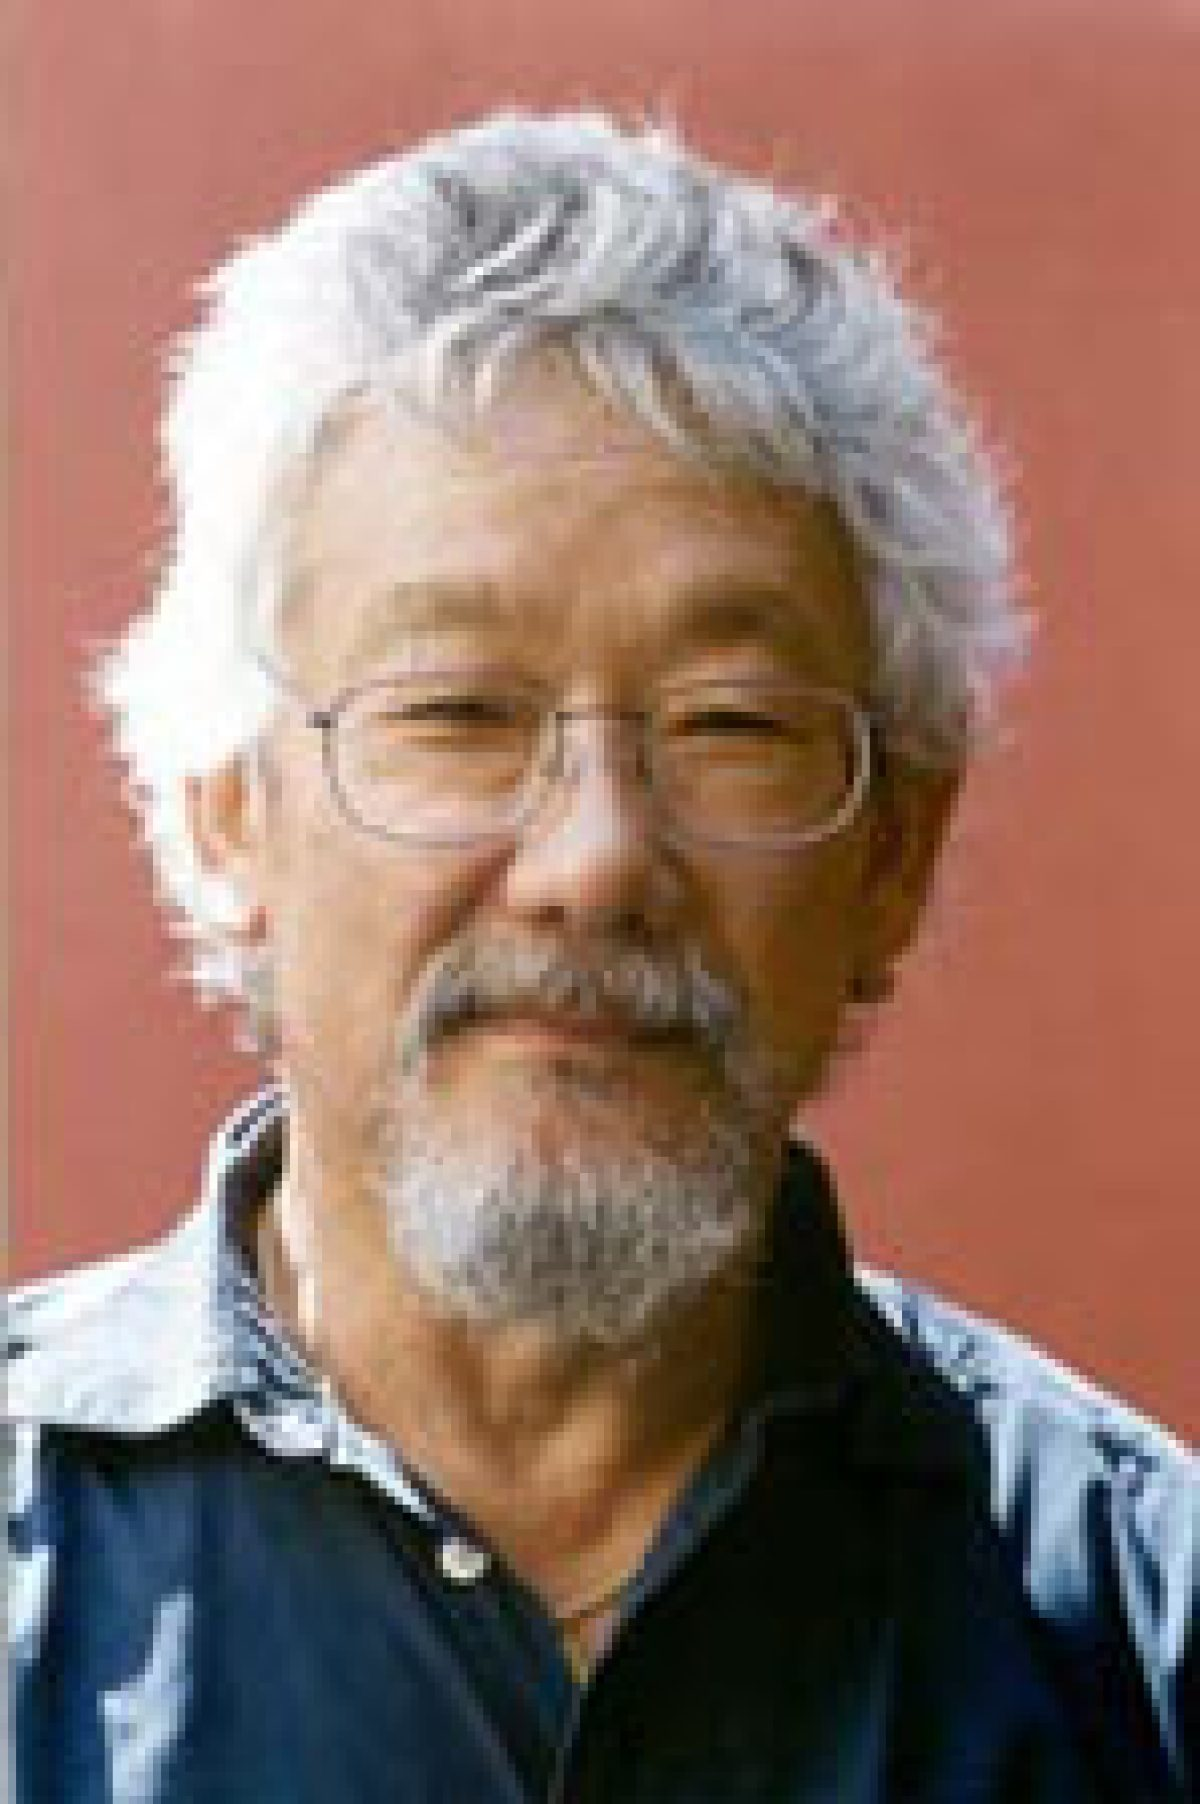 Dr. David Suzuki: As Outspoken as Ever